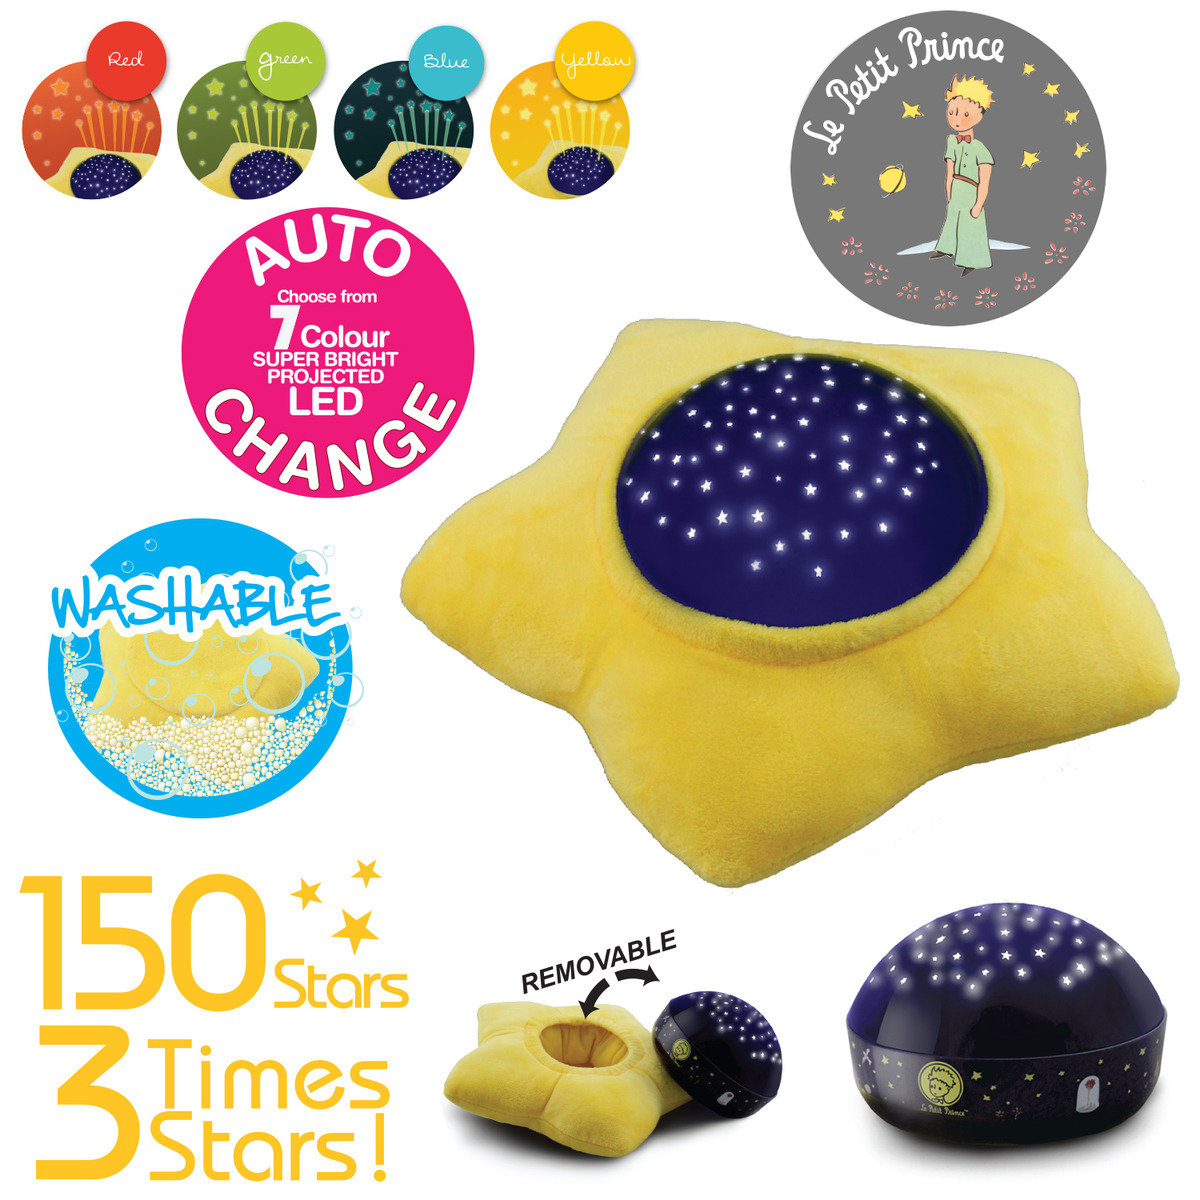 The Little Prince Washable Soft Star Plush Projector